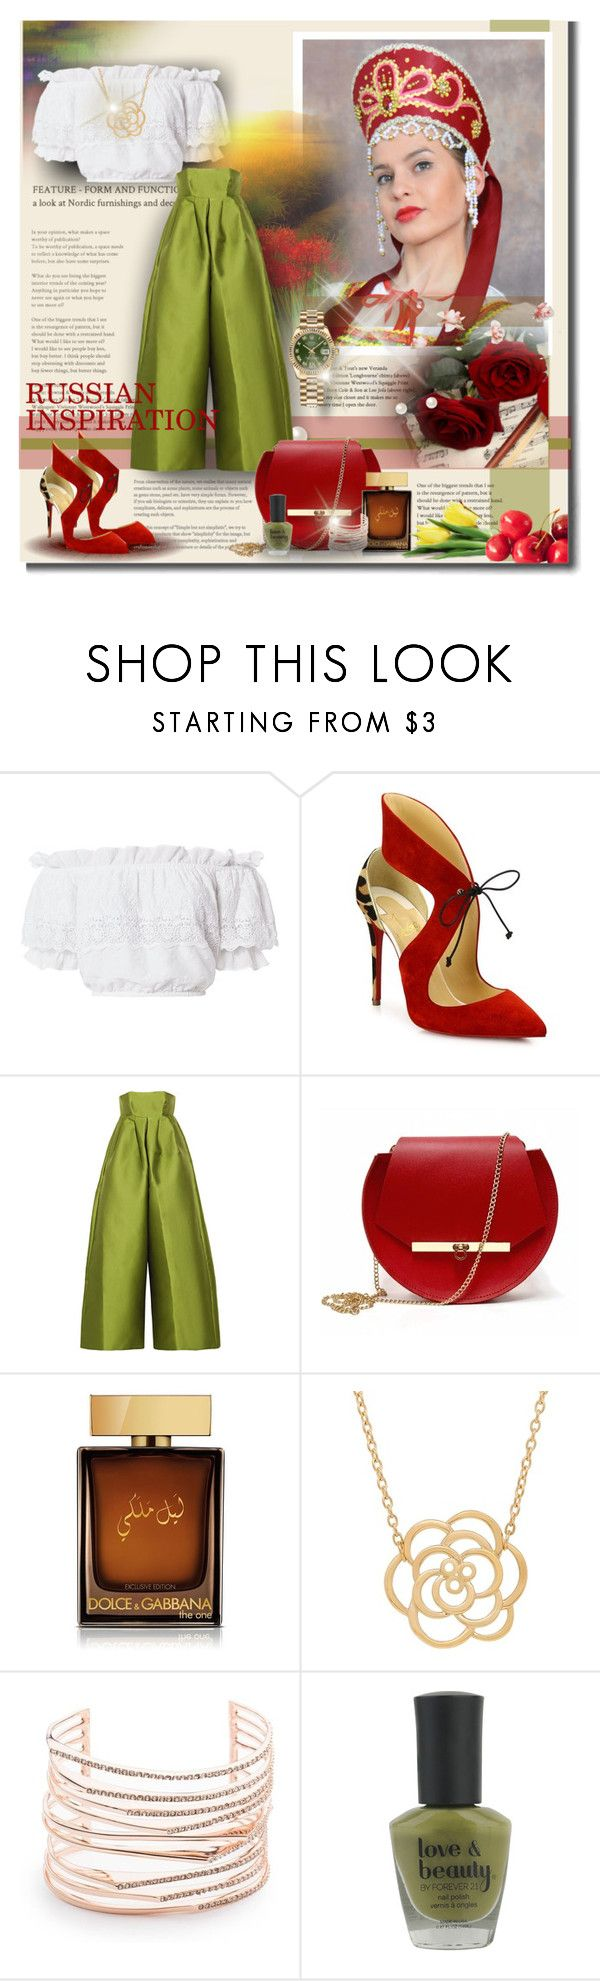 """RUSSIAN INSPIRATION"" by angelflair ❤ liked on Polyvore featuring Vila Milano, LoveShackFancy, Christian Louboutin, ESPRIT, Merchant Archive, Angela Valentine Handbags, Dolce&Gabbana, Lord & Taylor, Alexis Bittar and Forever 21"